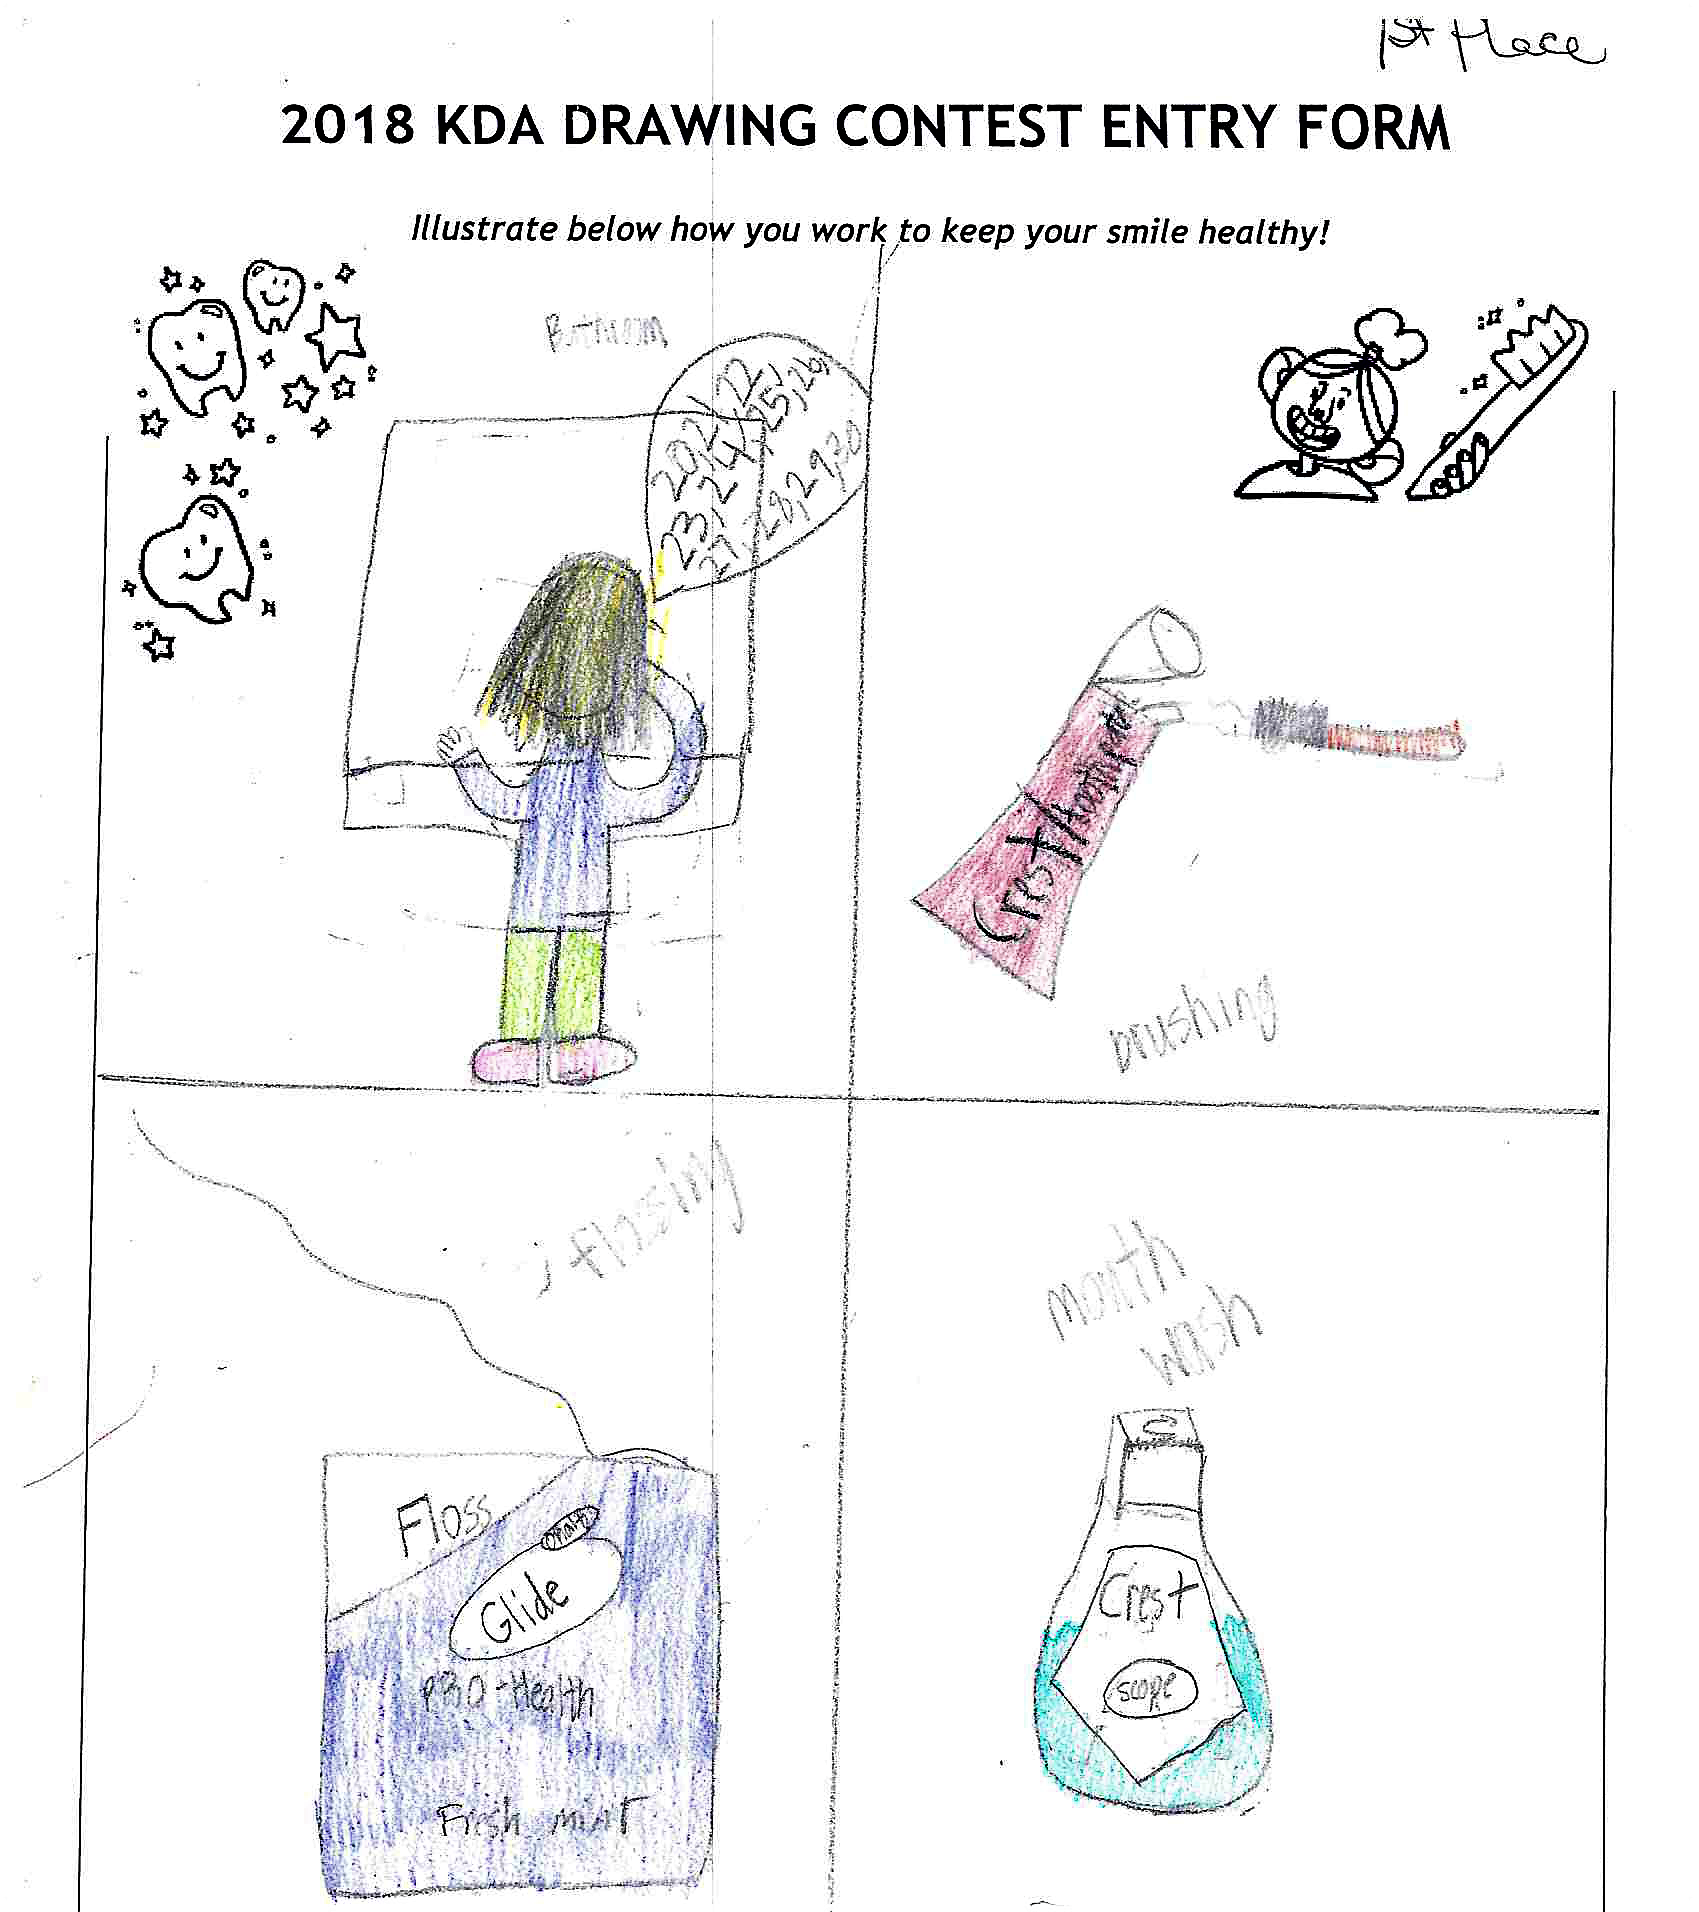 Kda Announces 2018 Ncdhm Drawing Contest Winners